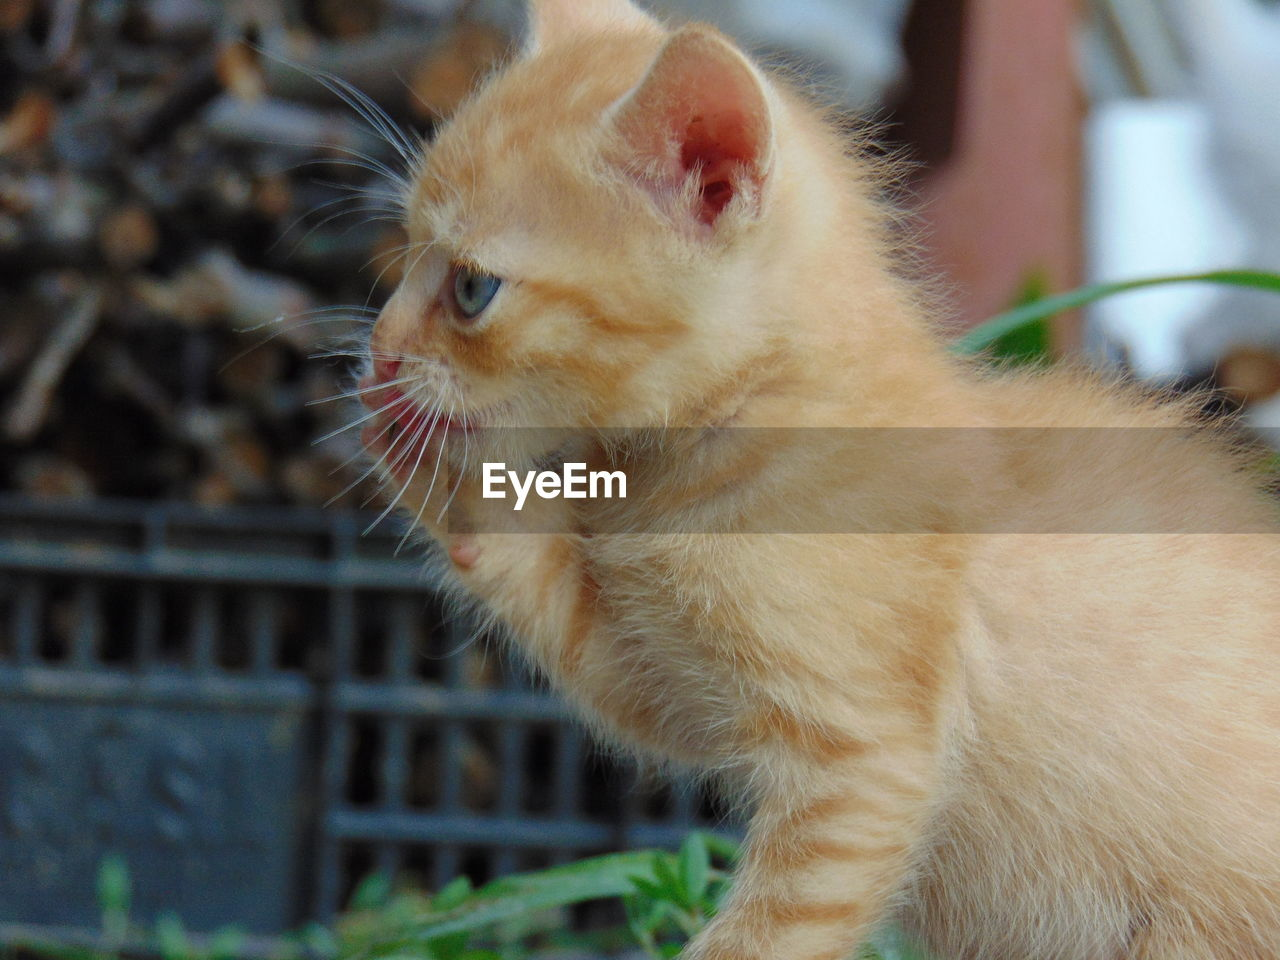 pets, mammal, domestic, animal themes, domestic animals, one animal, animal, vertebrate, domestic cat, feline, cat, focus on foreground, no people, close-up, whisker, looking, day, side view, looking away, outdoors, ginger cat